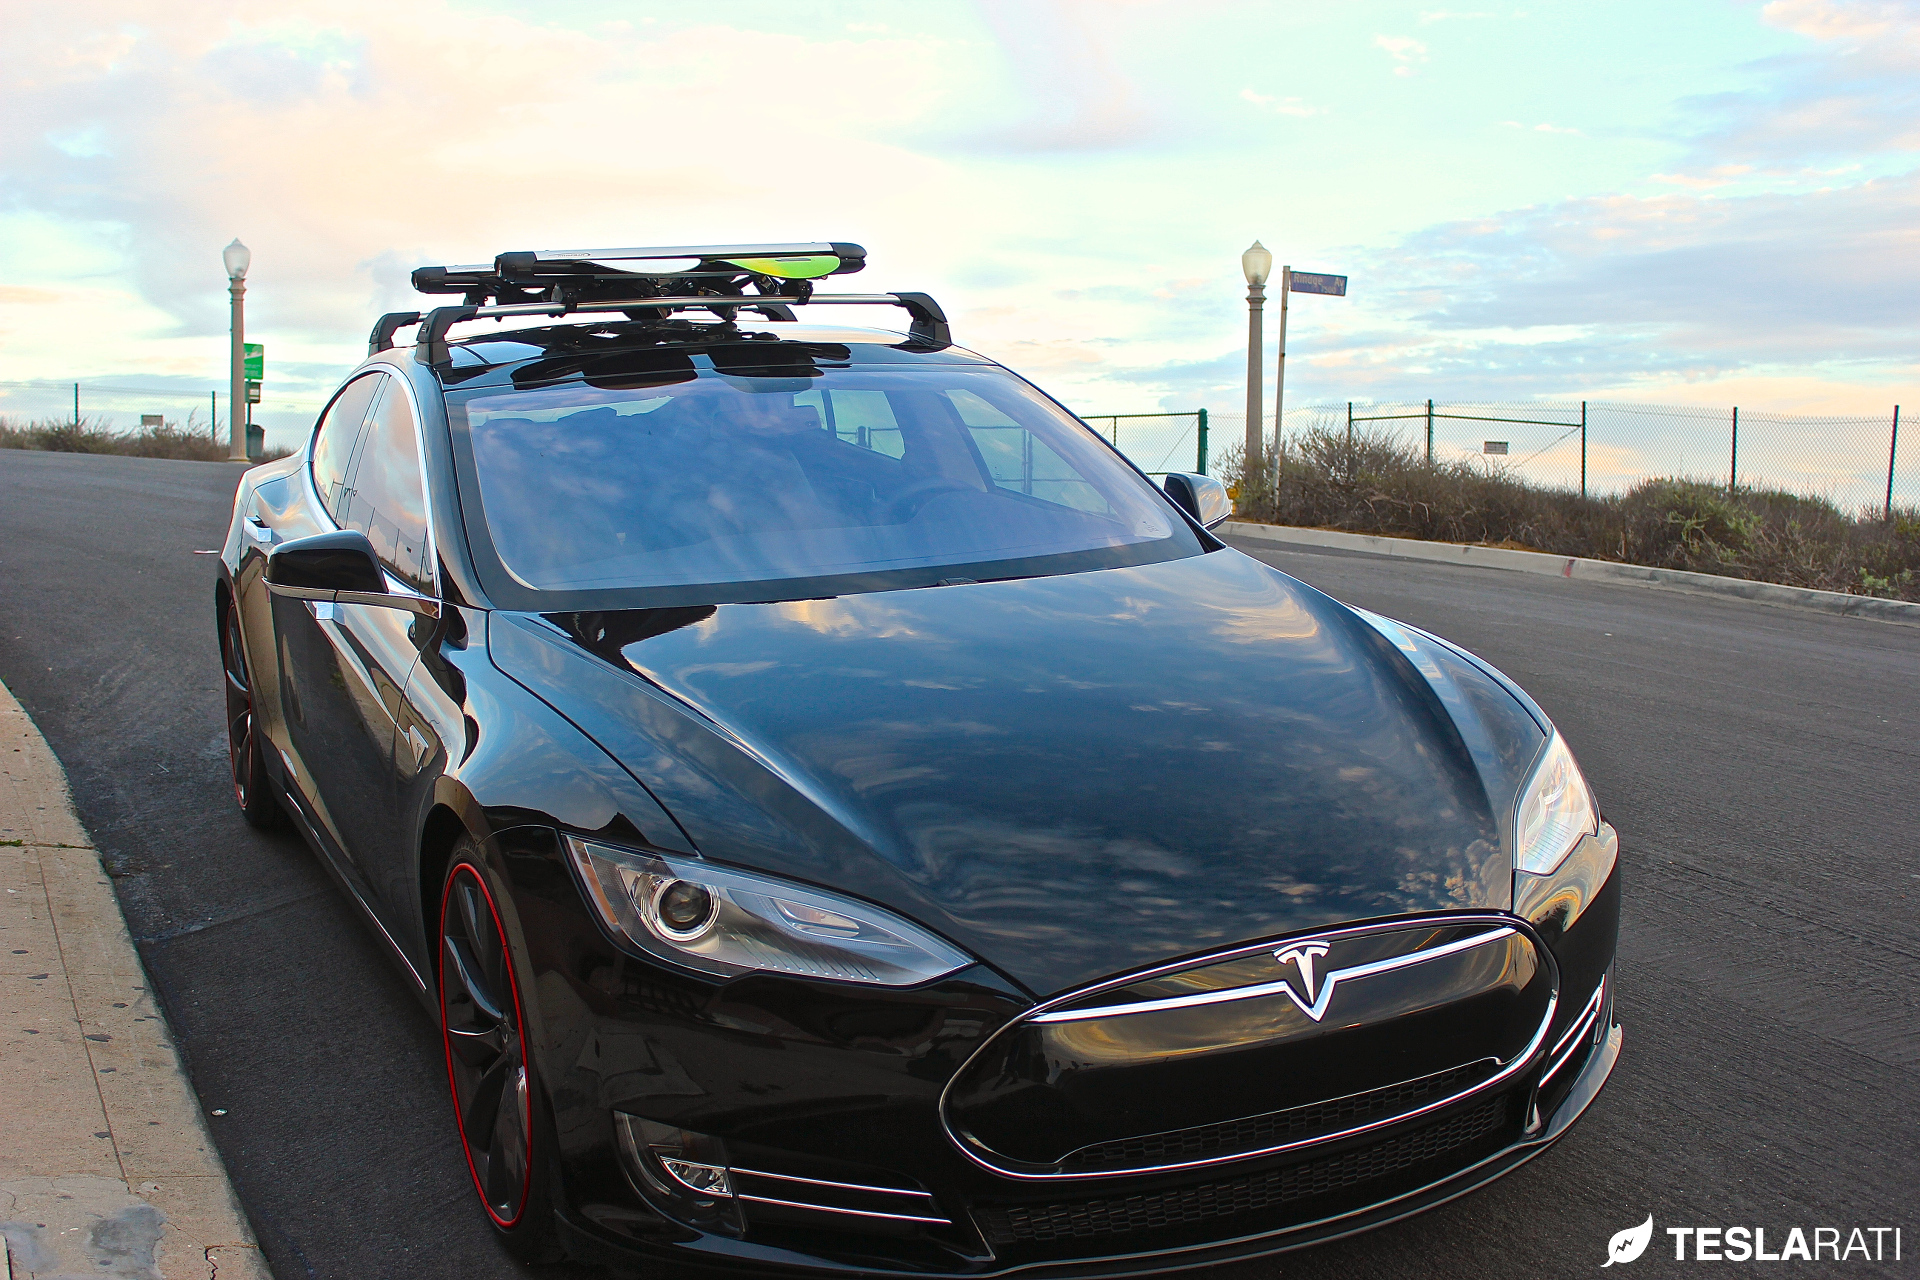 Tesla Powerwall Review >> Tesla Model S Roof Rack System (Whispbar) Review